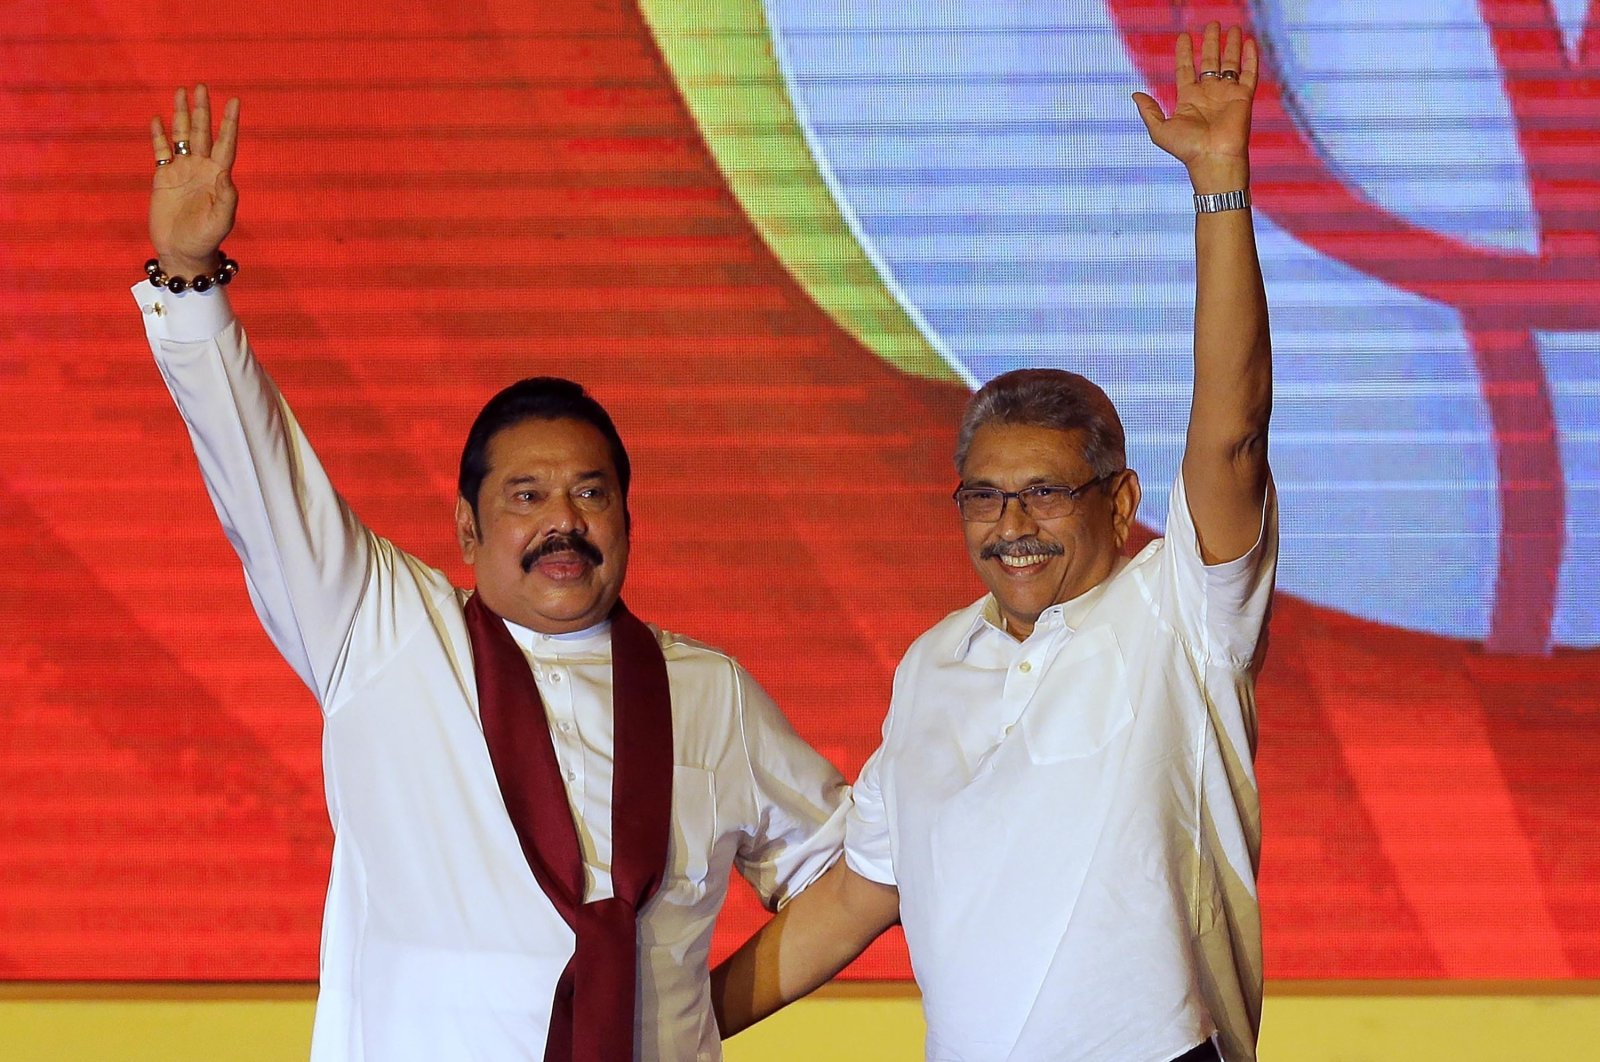 Former Sri Lankan President Mahinda Rajapaksa (L) and former Defense Secretary and his brother Gotabaya Rajapaksa wave at supporters during a party convention held to announce the presidential candidacy, Colombo, Aug. 11, 2019. (AP Photo)